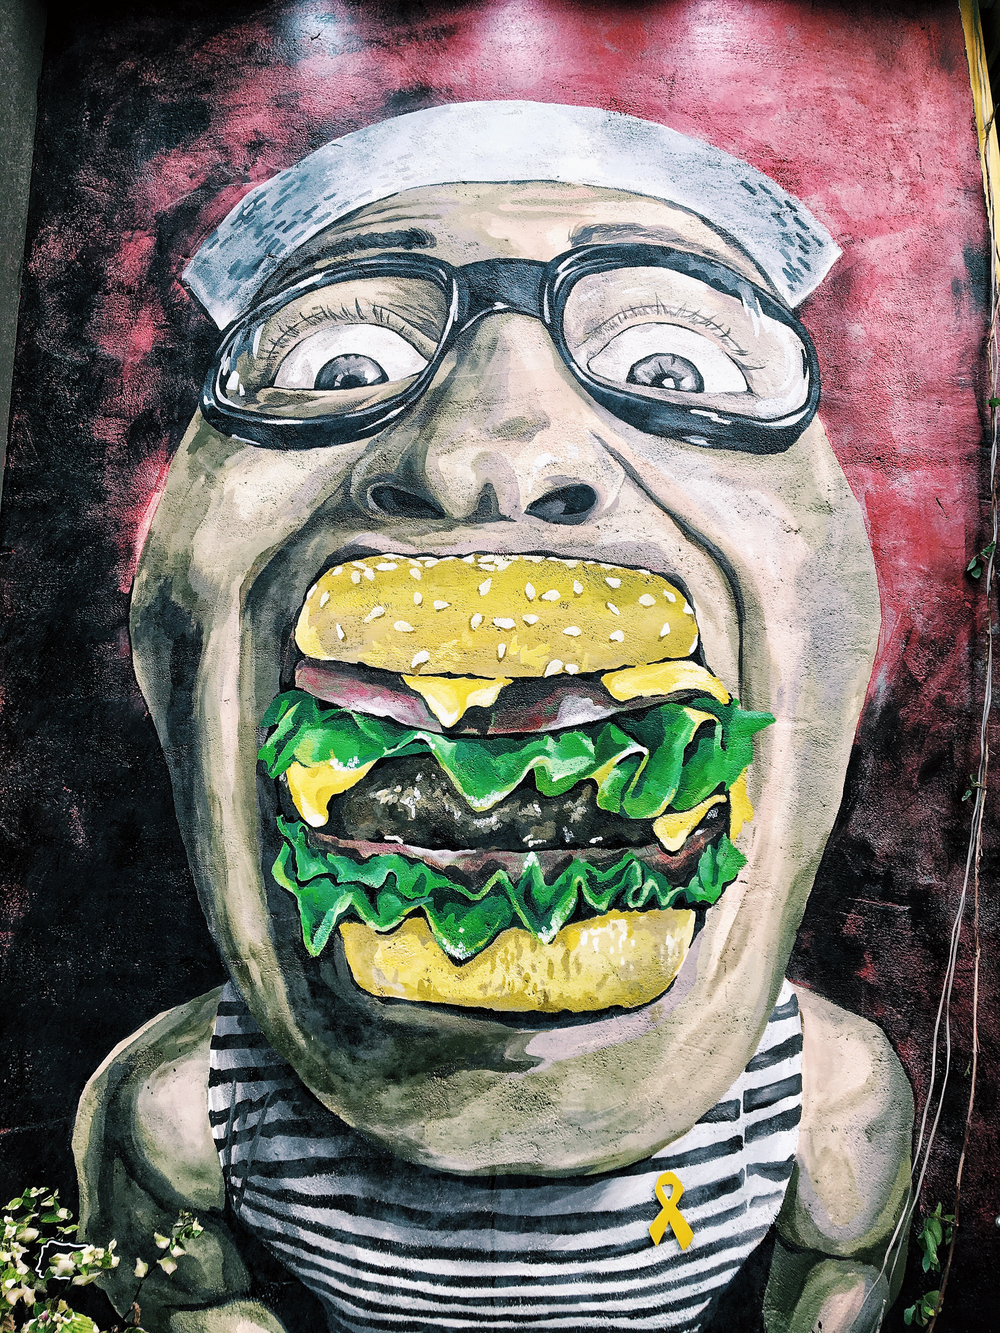 I'm guessing this mural depicts the guy in charge of the burgers.